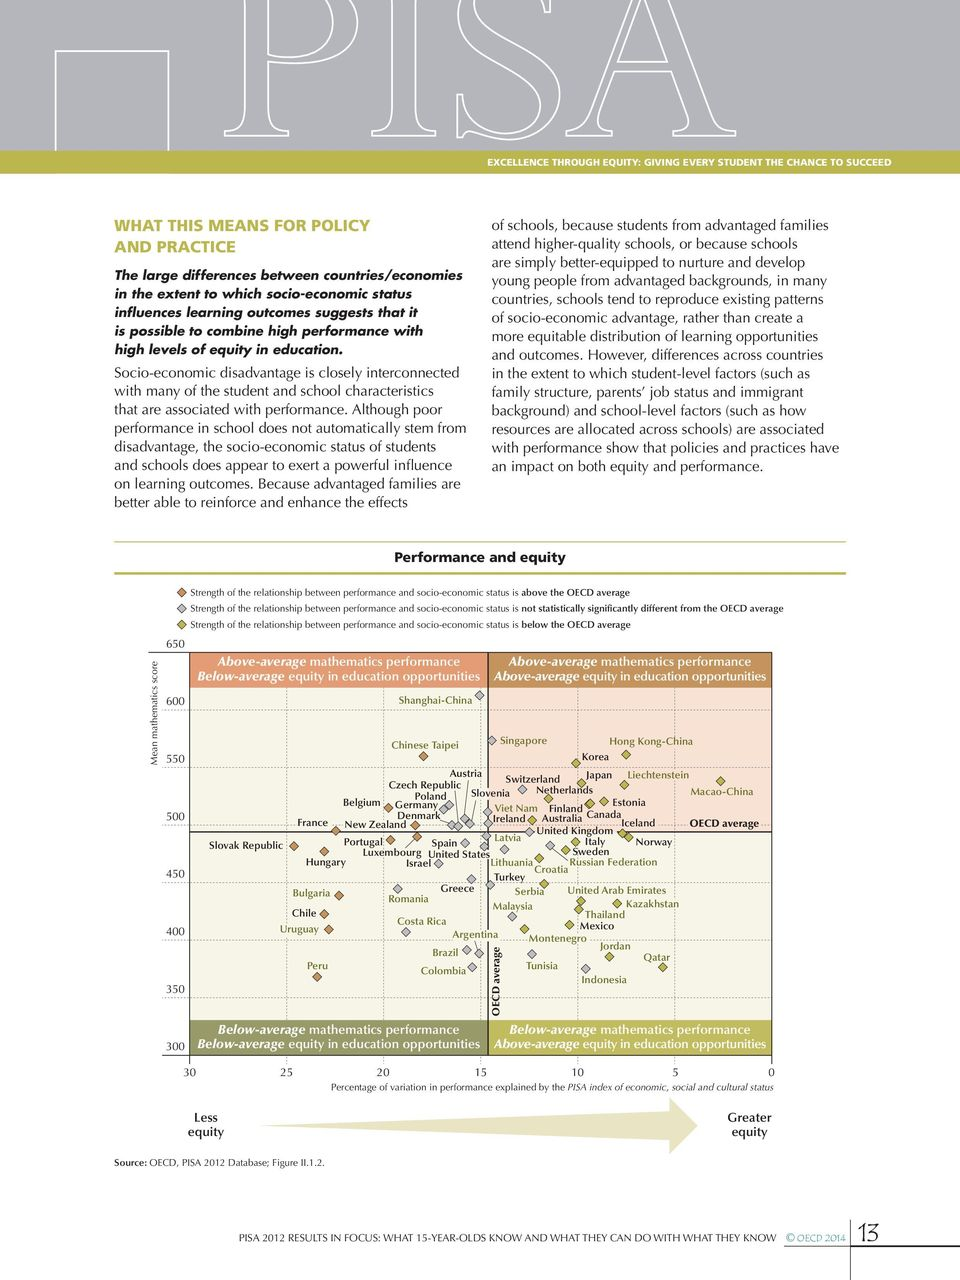 Socio-economic disadvantage is closely interconnected with many of the student and school characteristics that are associated with performance.